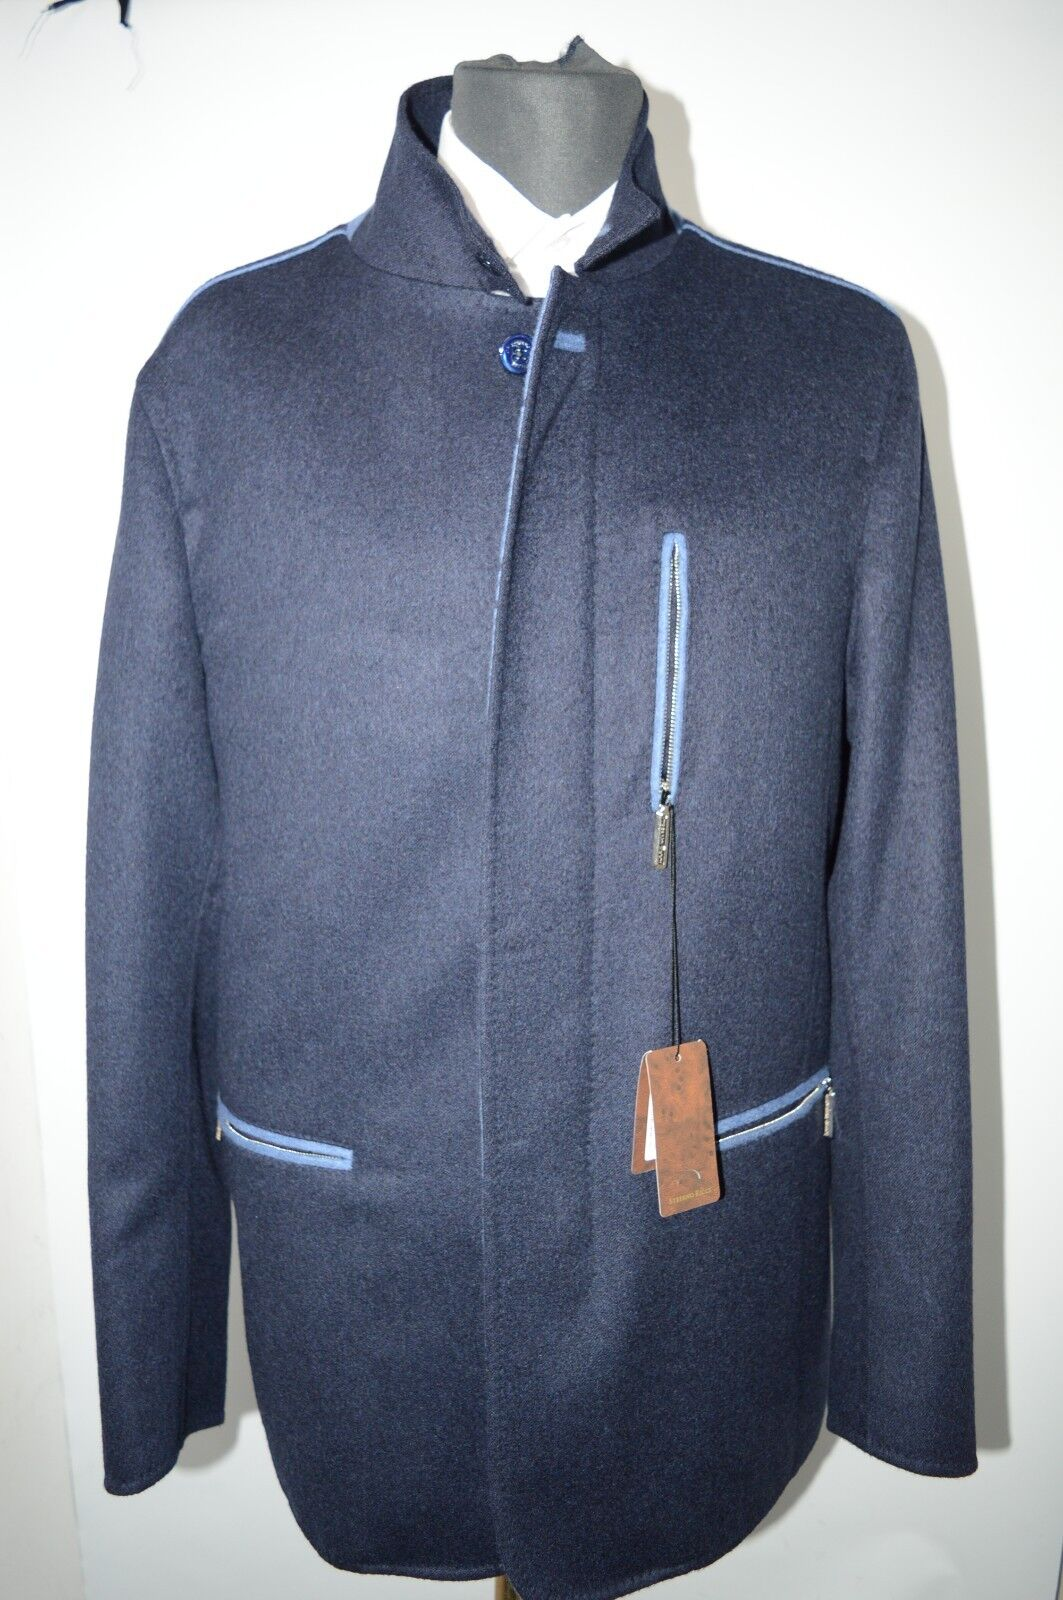 NEW 21350,00  STEFANO RICCI  Outwear Top Over Coat Cashmere Us M Eu 50 (G54)